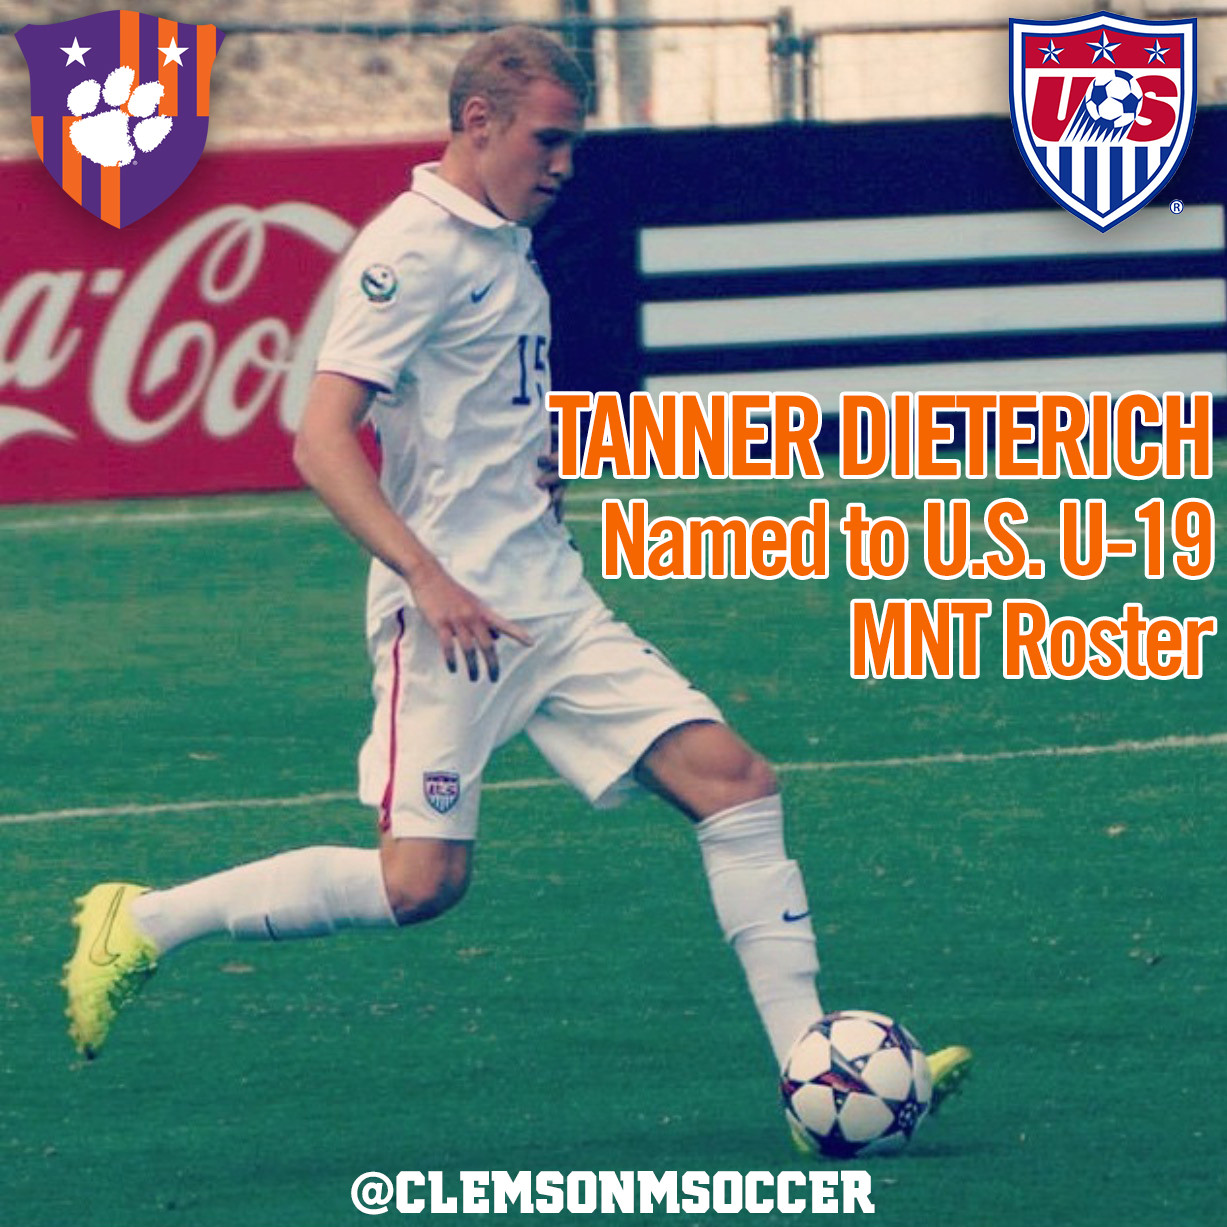 Dieterich Named to U.S. U-19 MNT Roster